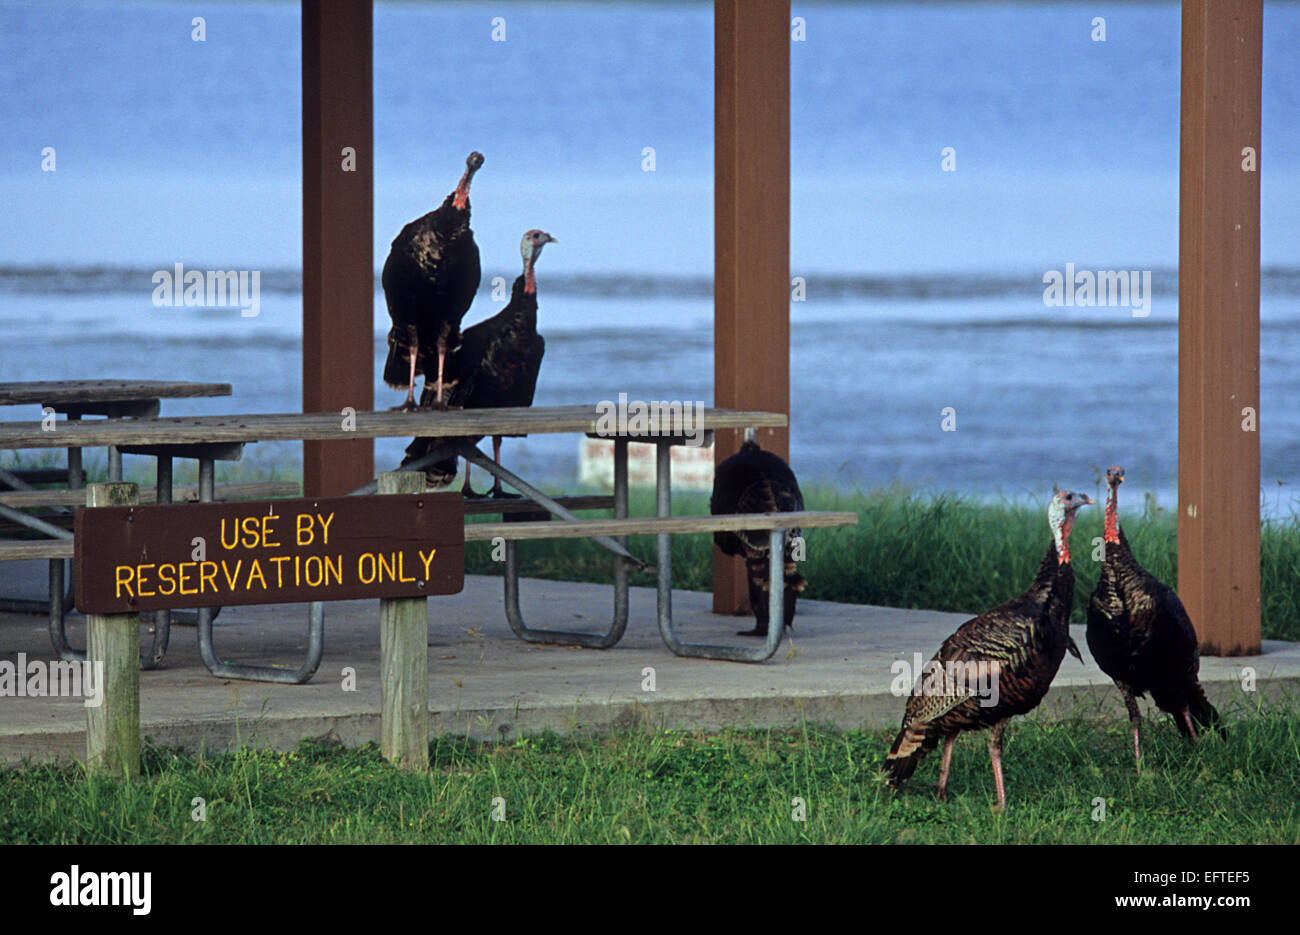 Turkeys resting in a campground - Stock Image